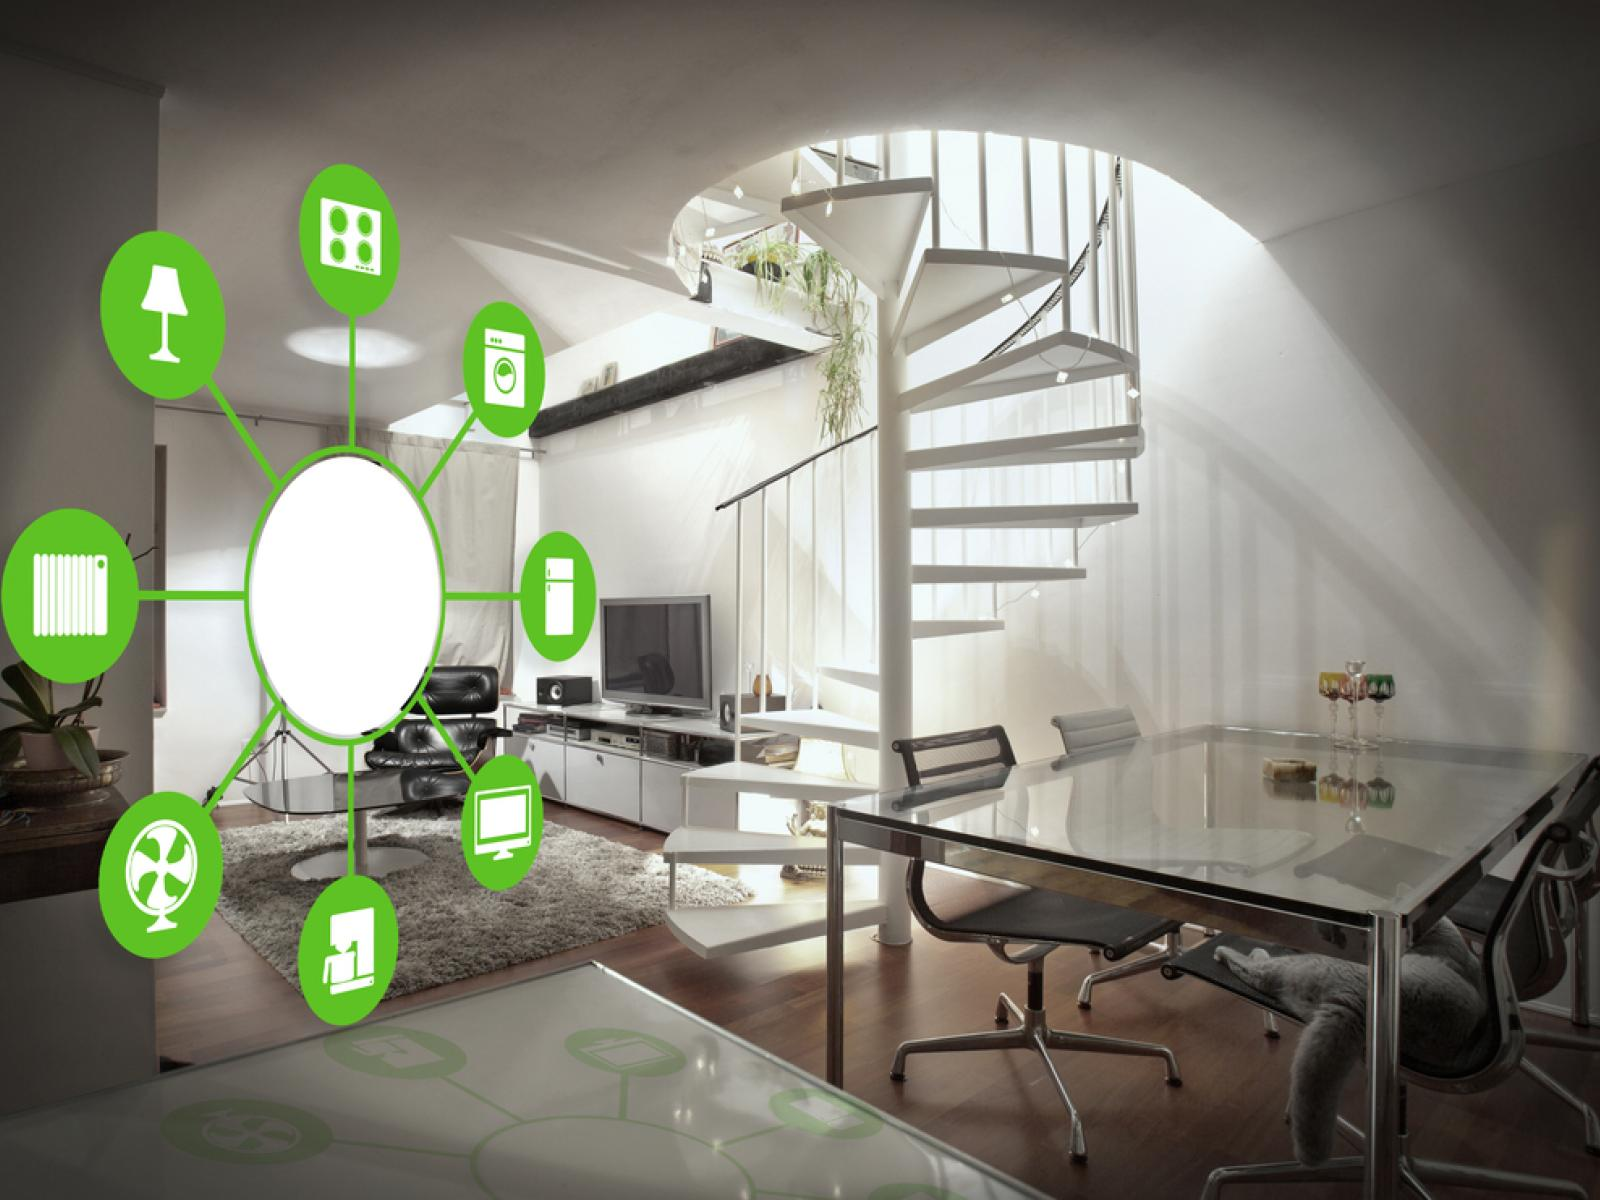 Modern home with connected icons